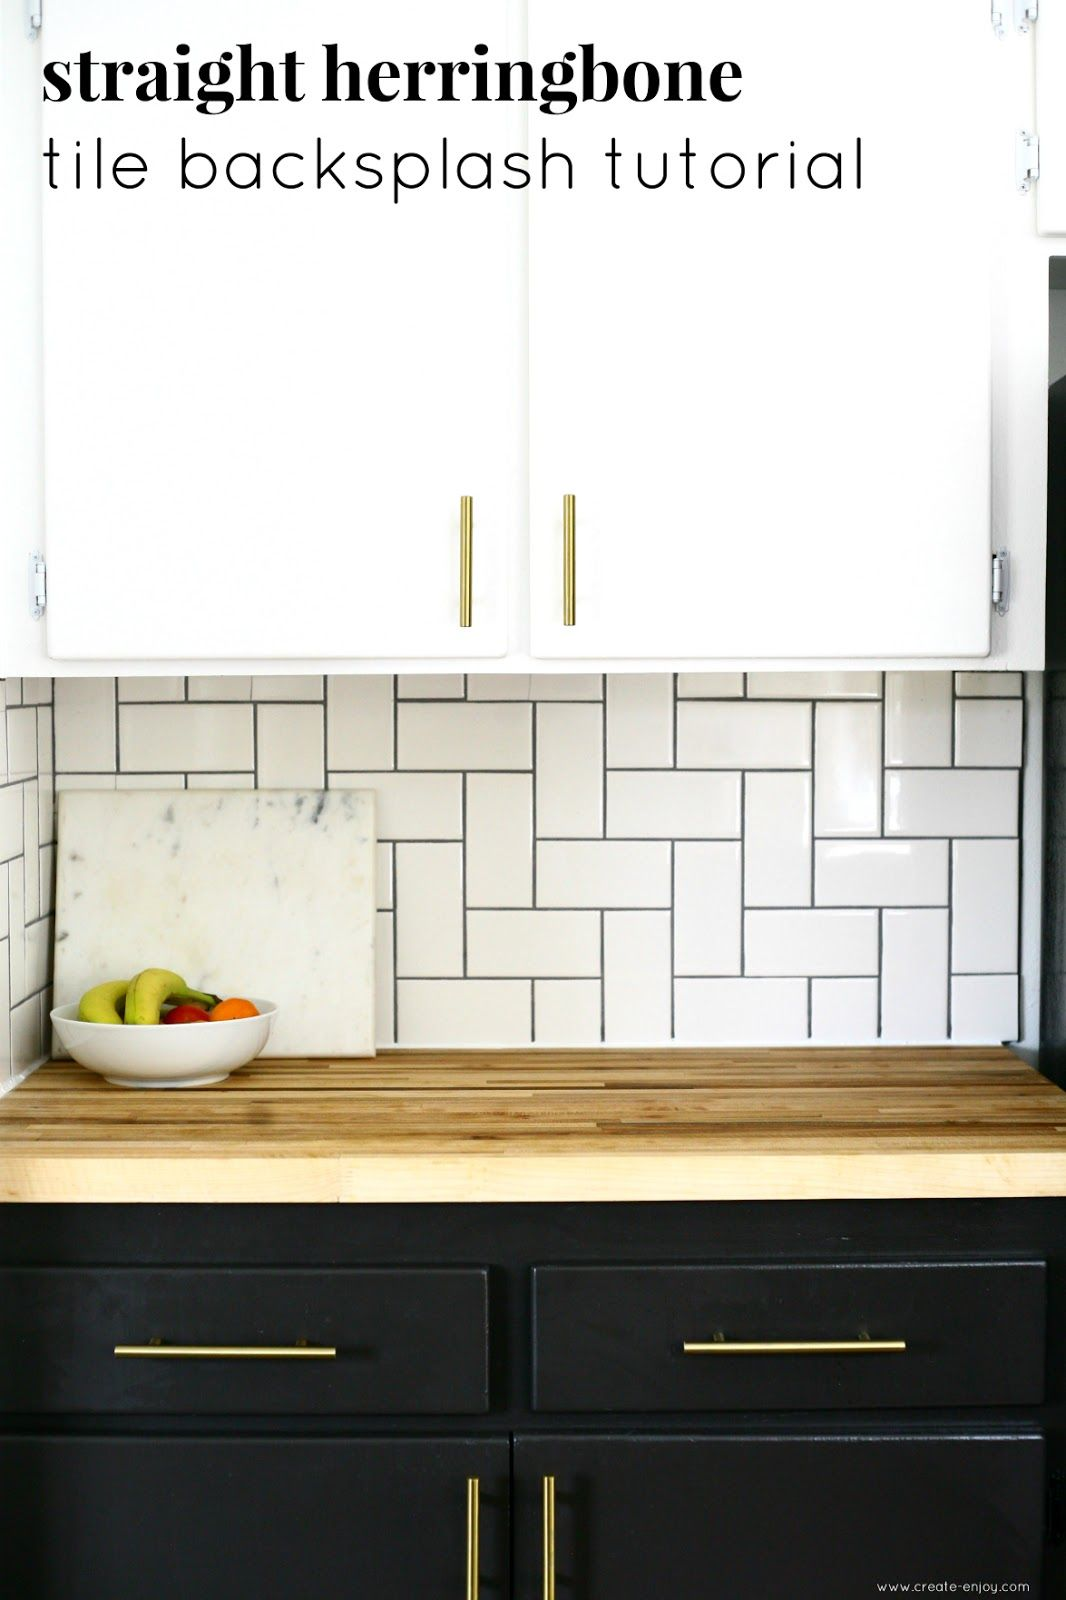 Straight Herringbone Tile Backsplash Tutorial Tutorials From